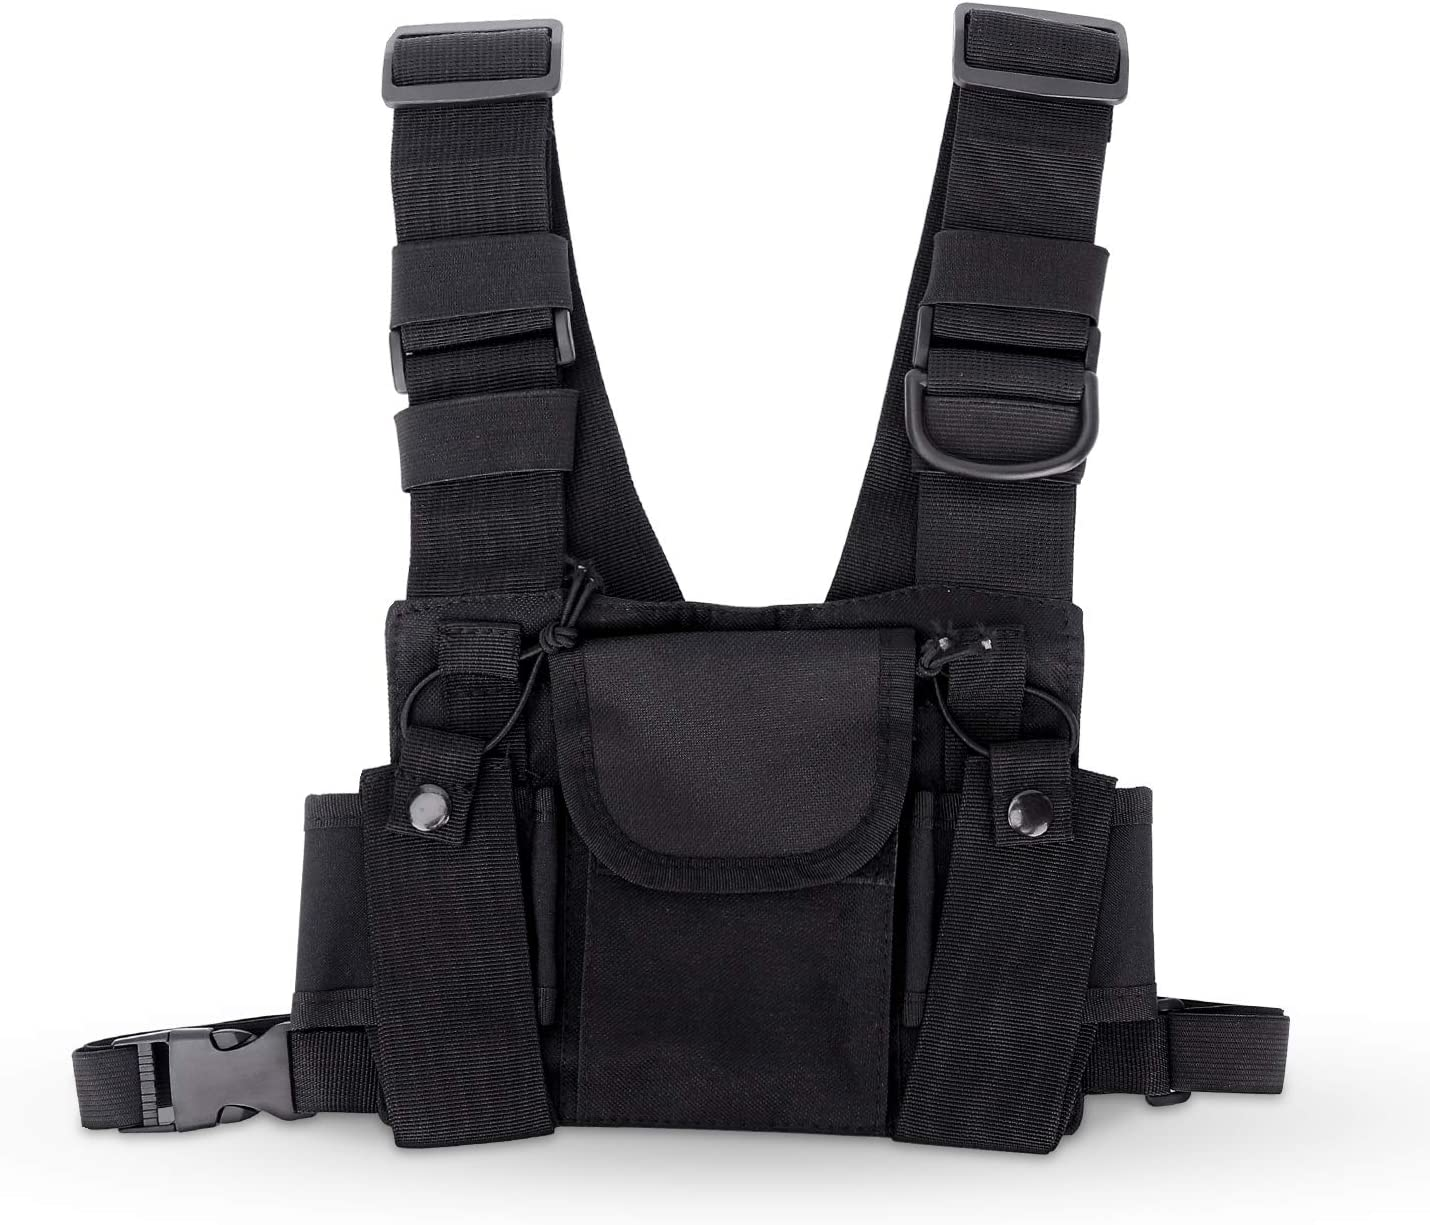 Image of the Kekai Universal Radio Chest Harness, in color black.